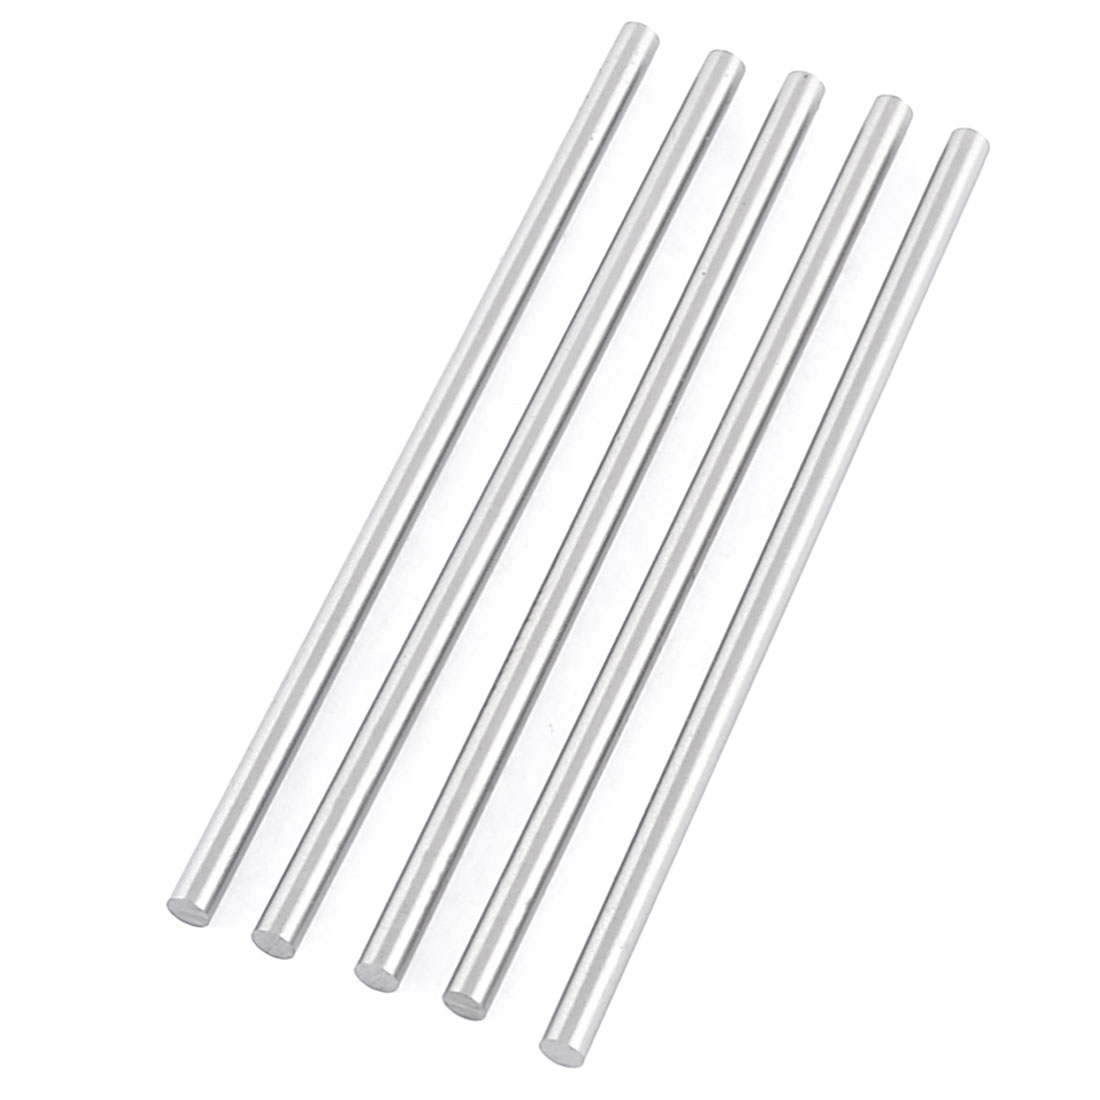 5 Pcs HSS High Speed Steel Round Shape Turning Lathe Bars 4mm Dia 10cm Length